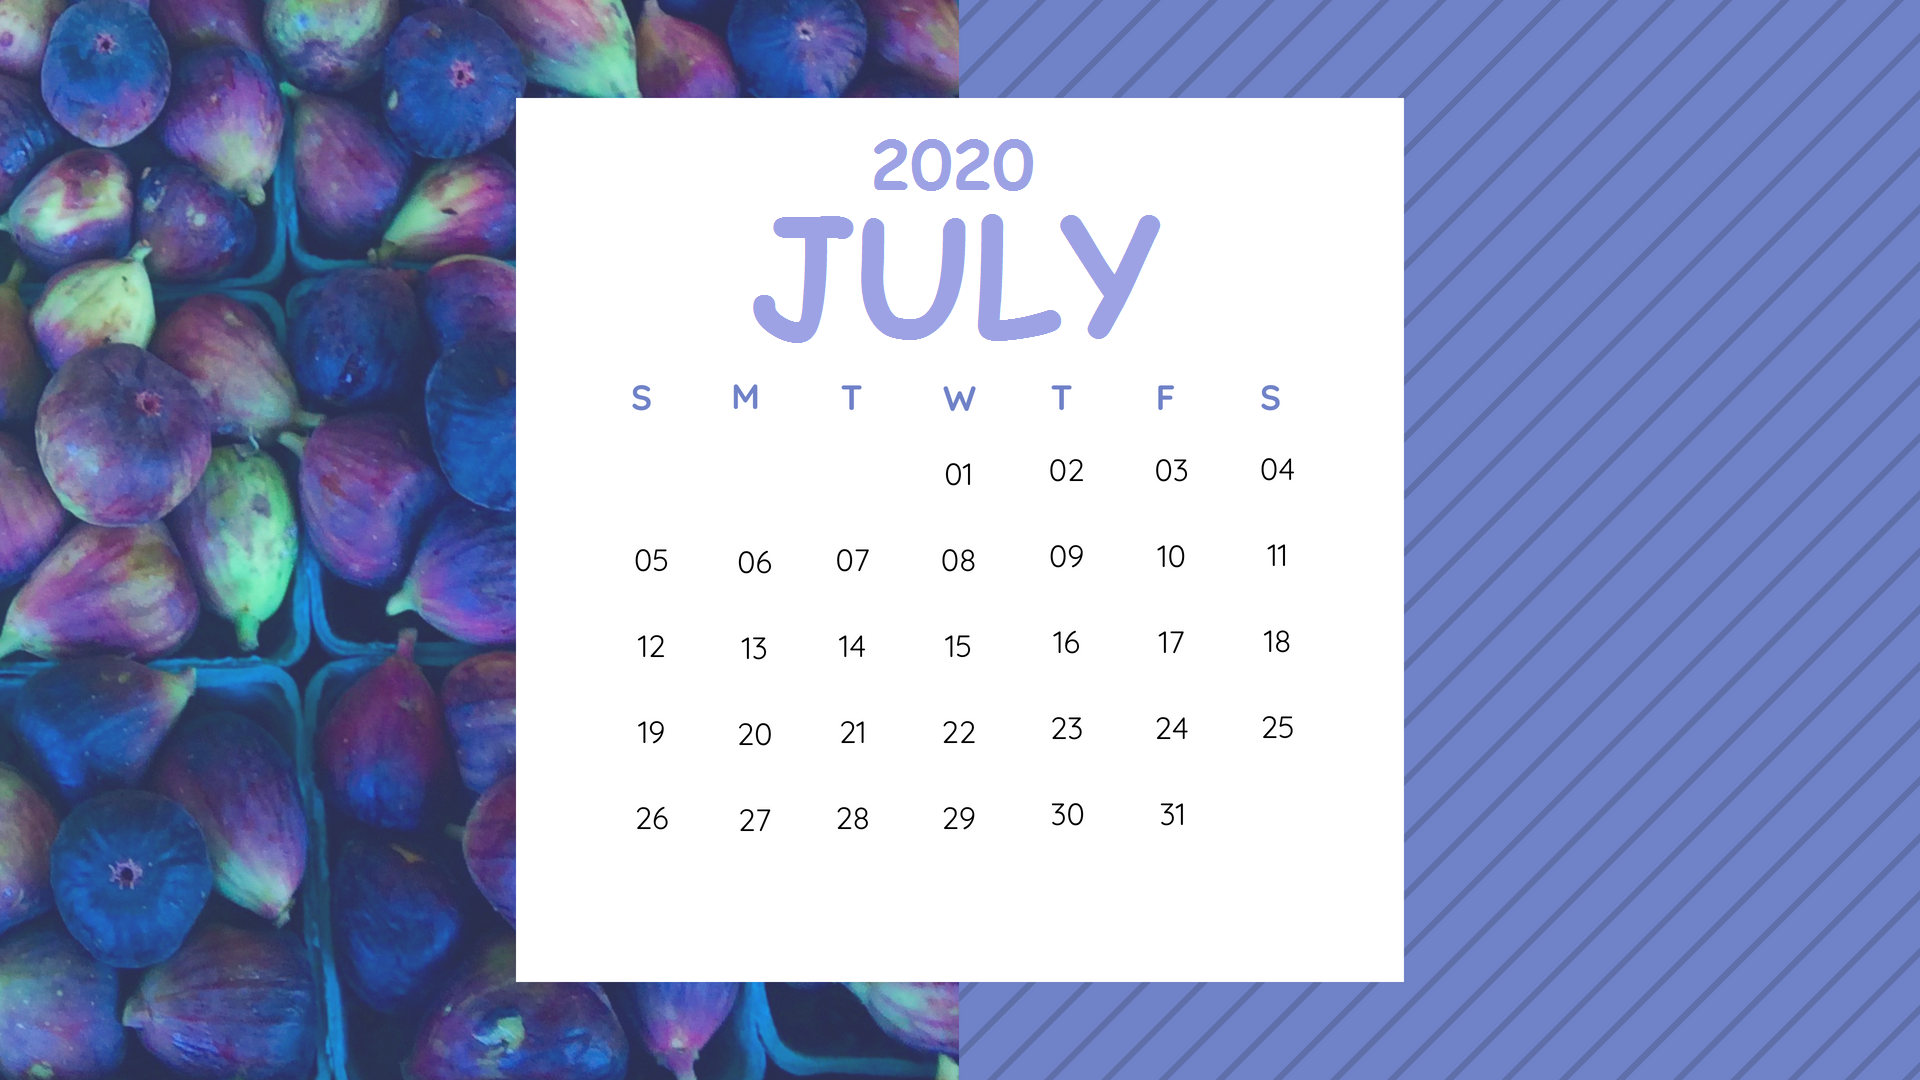 Cute July 2020 Desktop Calendar Wallpaper